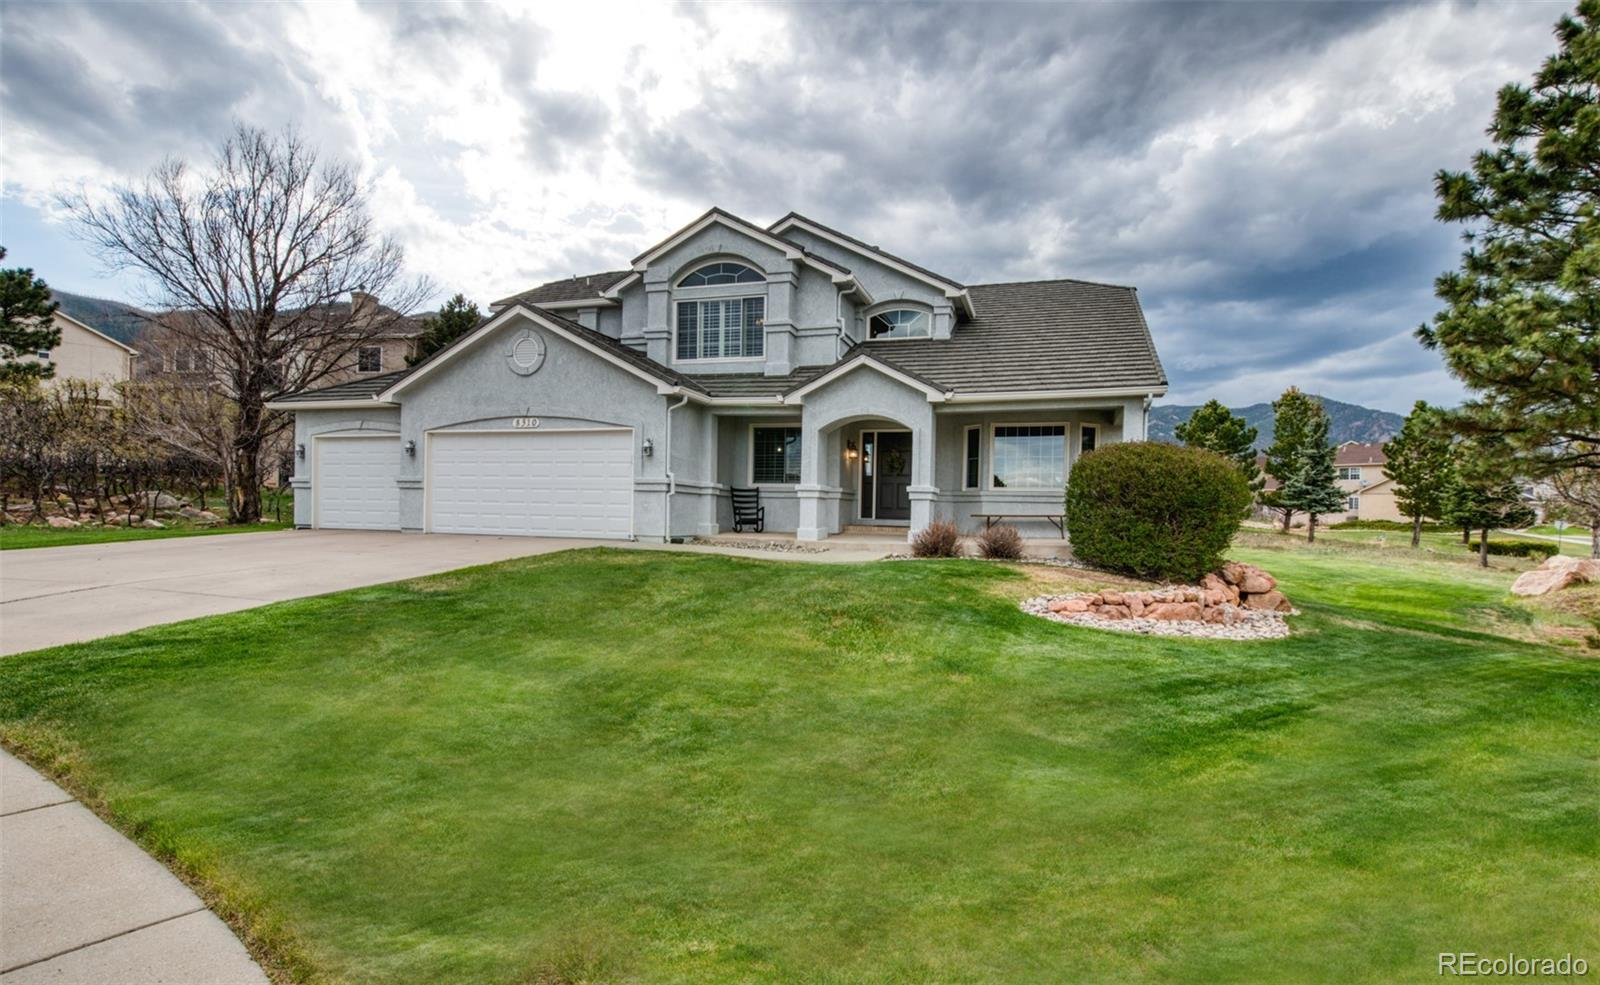 8310 Lauralwood Lane, Colorado Springs, CO 80919 - Colorado Springs, CO real estate listing